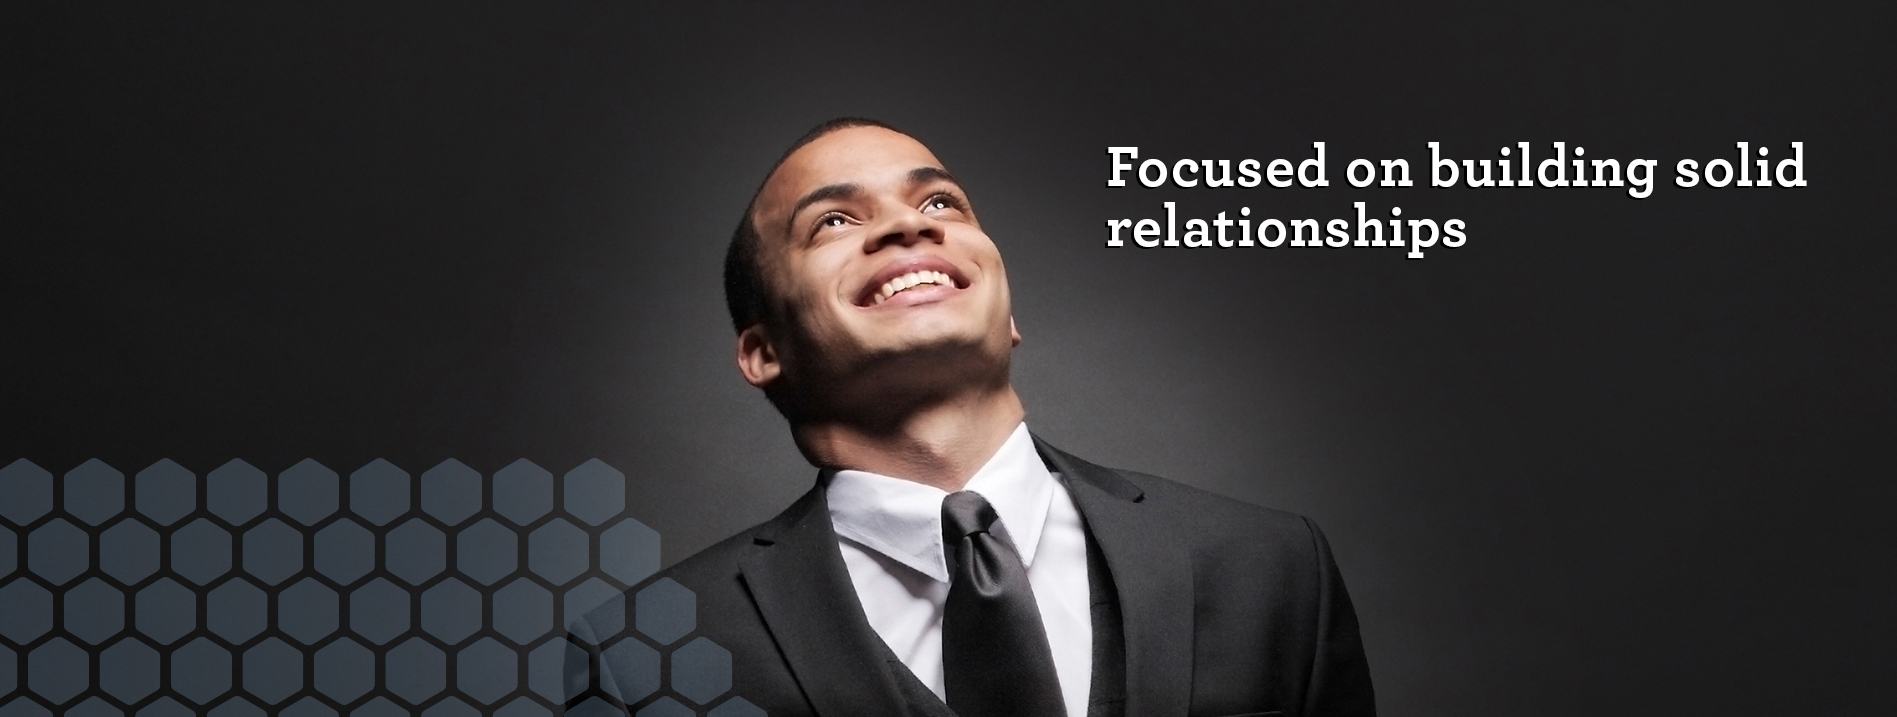 Brooklyn Financial Collections provides persistent financial credit restoration services to creditors and consumers. BrooklynFinancial Collections is focused on building solid relationships.